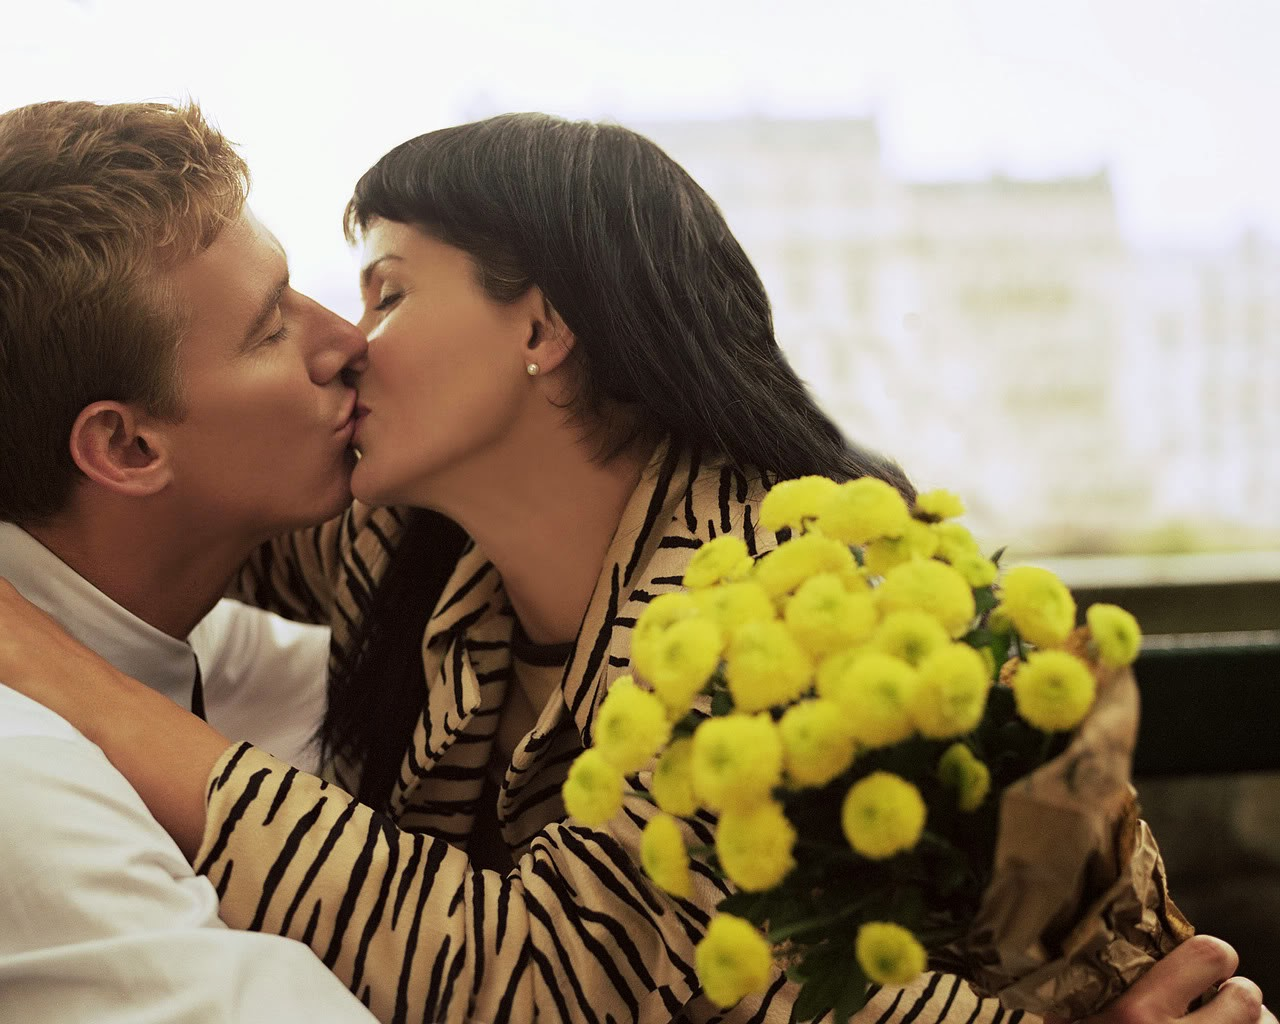 happy kiss day 13th february 2014 hd images and pics happiness style